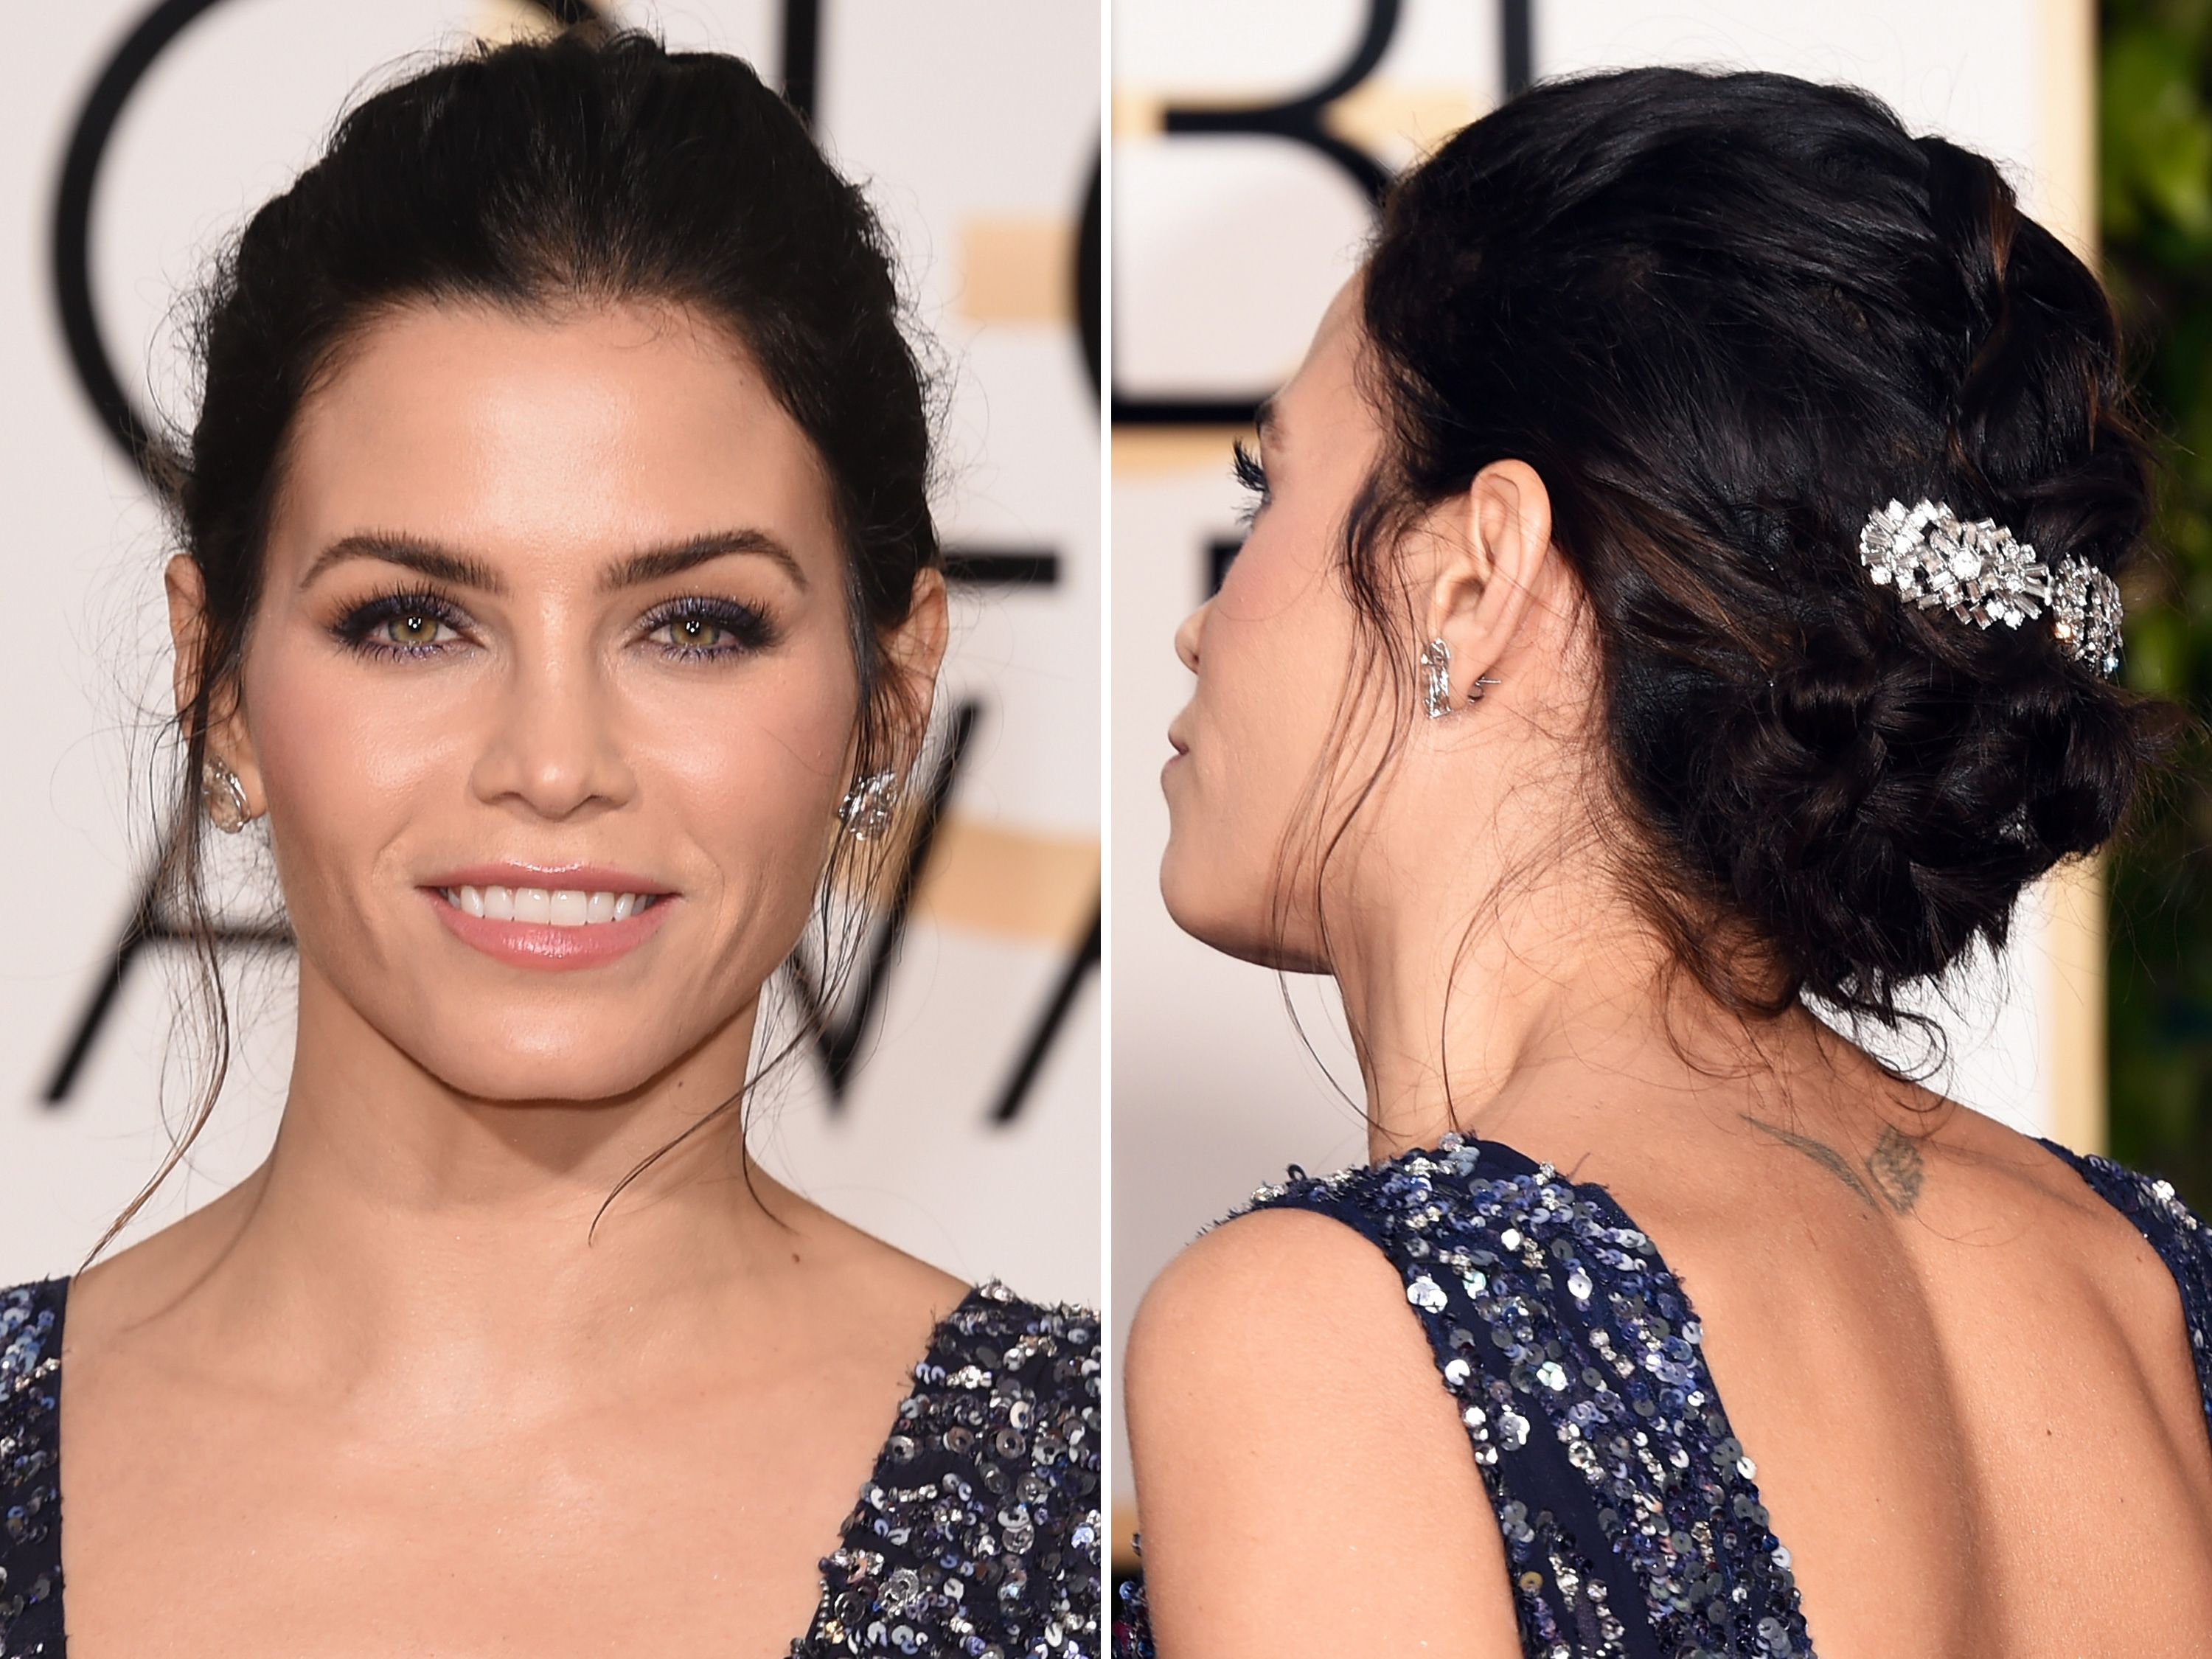 Best hair and make-up at the Golden Globes 2019 Best hair and make-up at the Golden Globes 2019 new picture